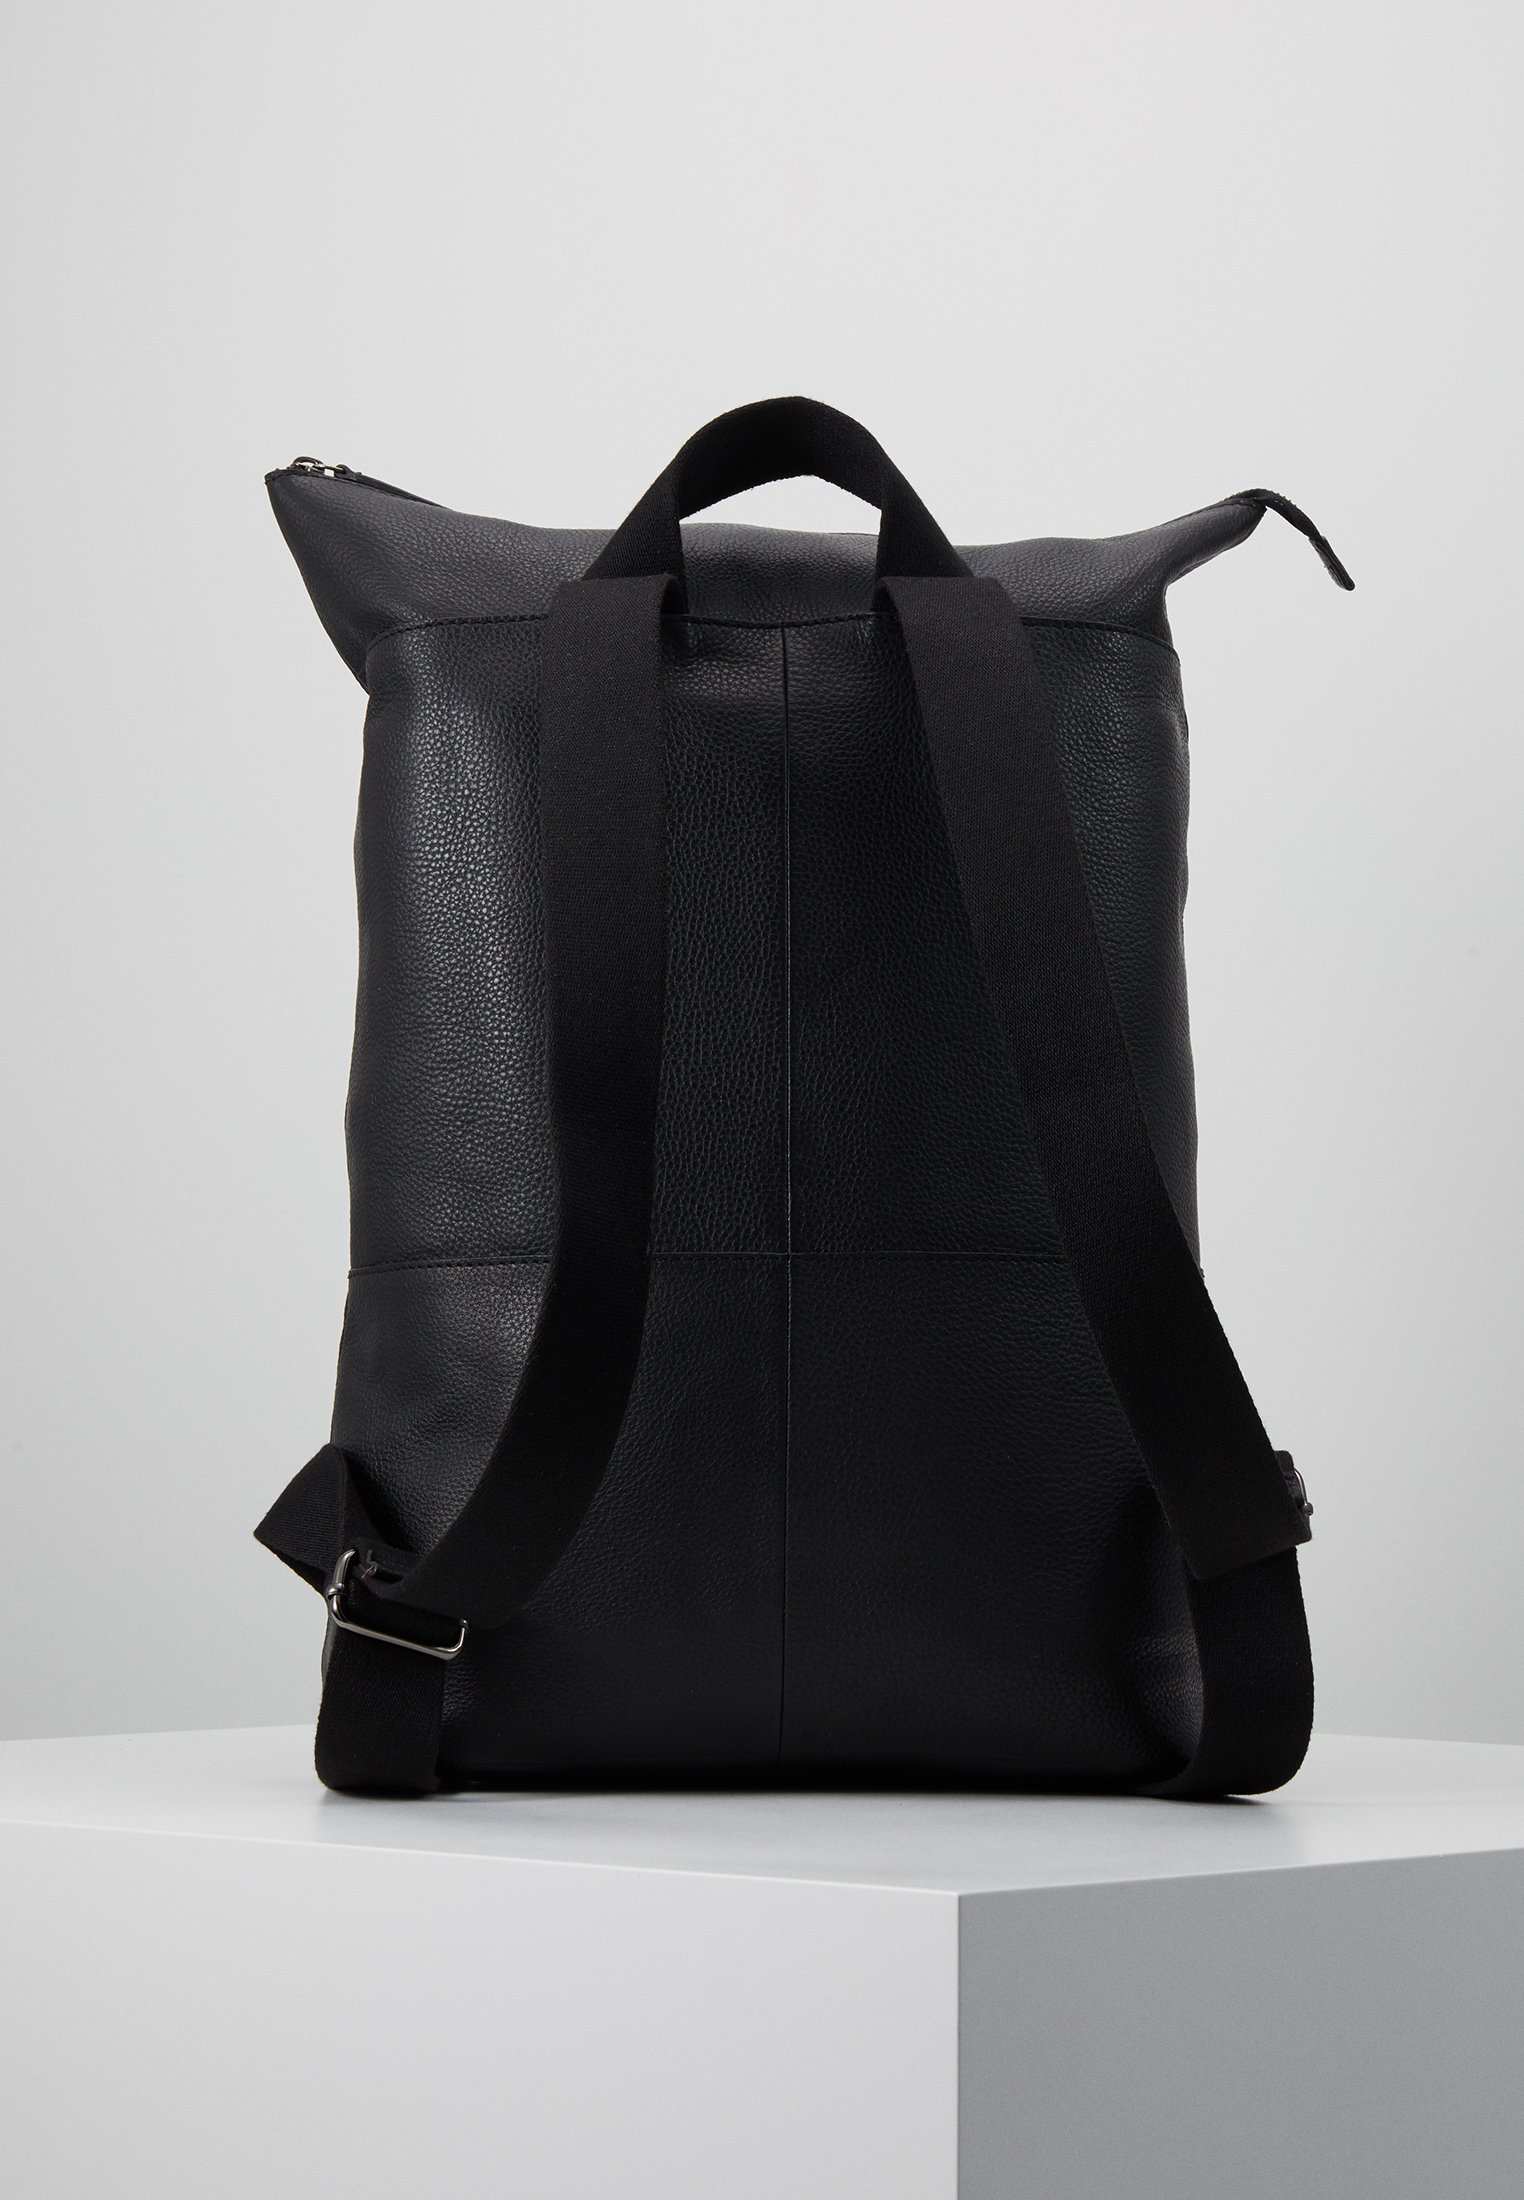 Zign Tagesrucksack - Black Friday